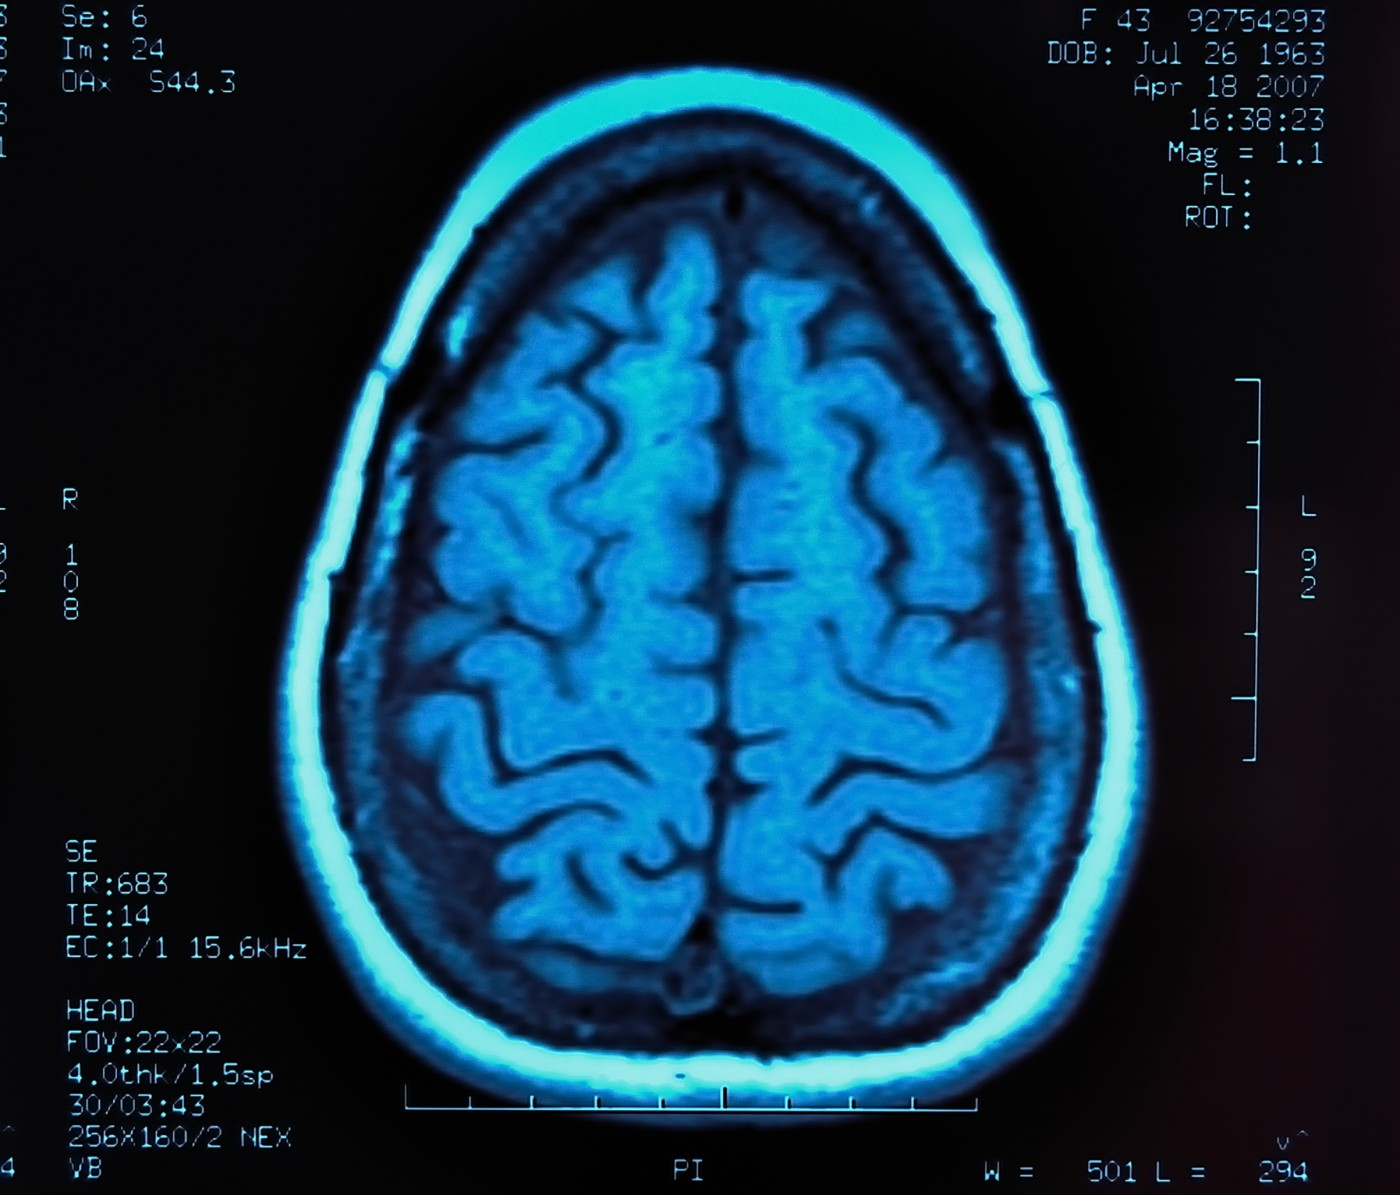 New Study Evaluates The Role of MRI in Monitoring MS Progression